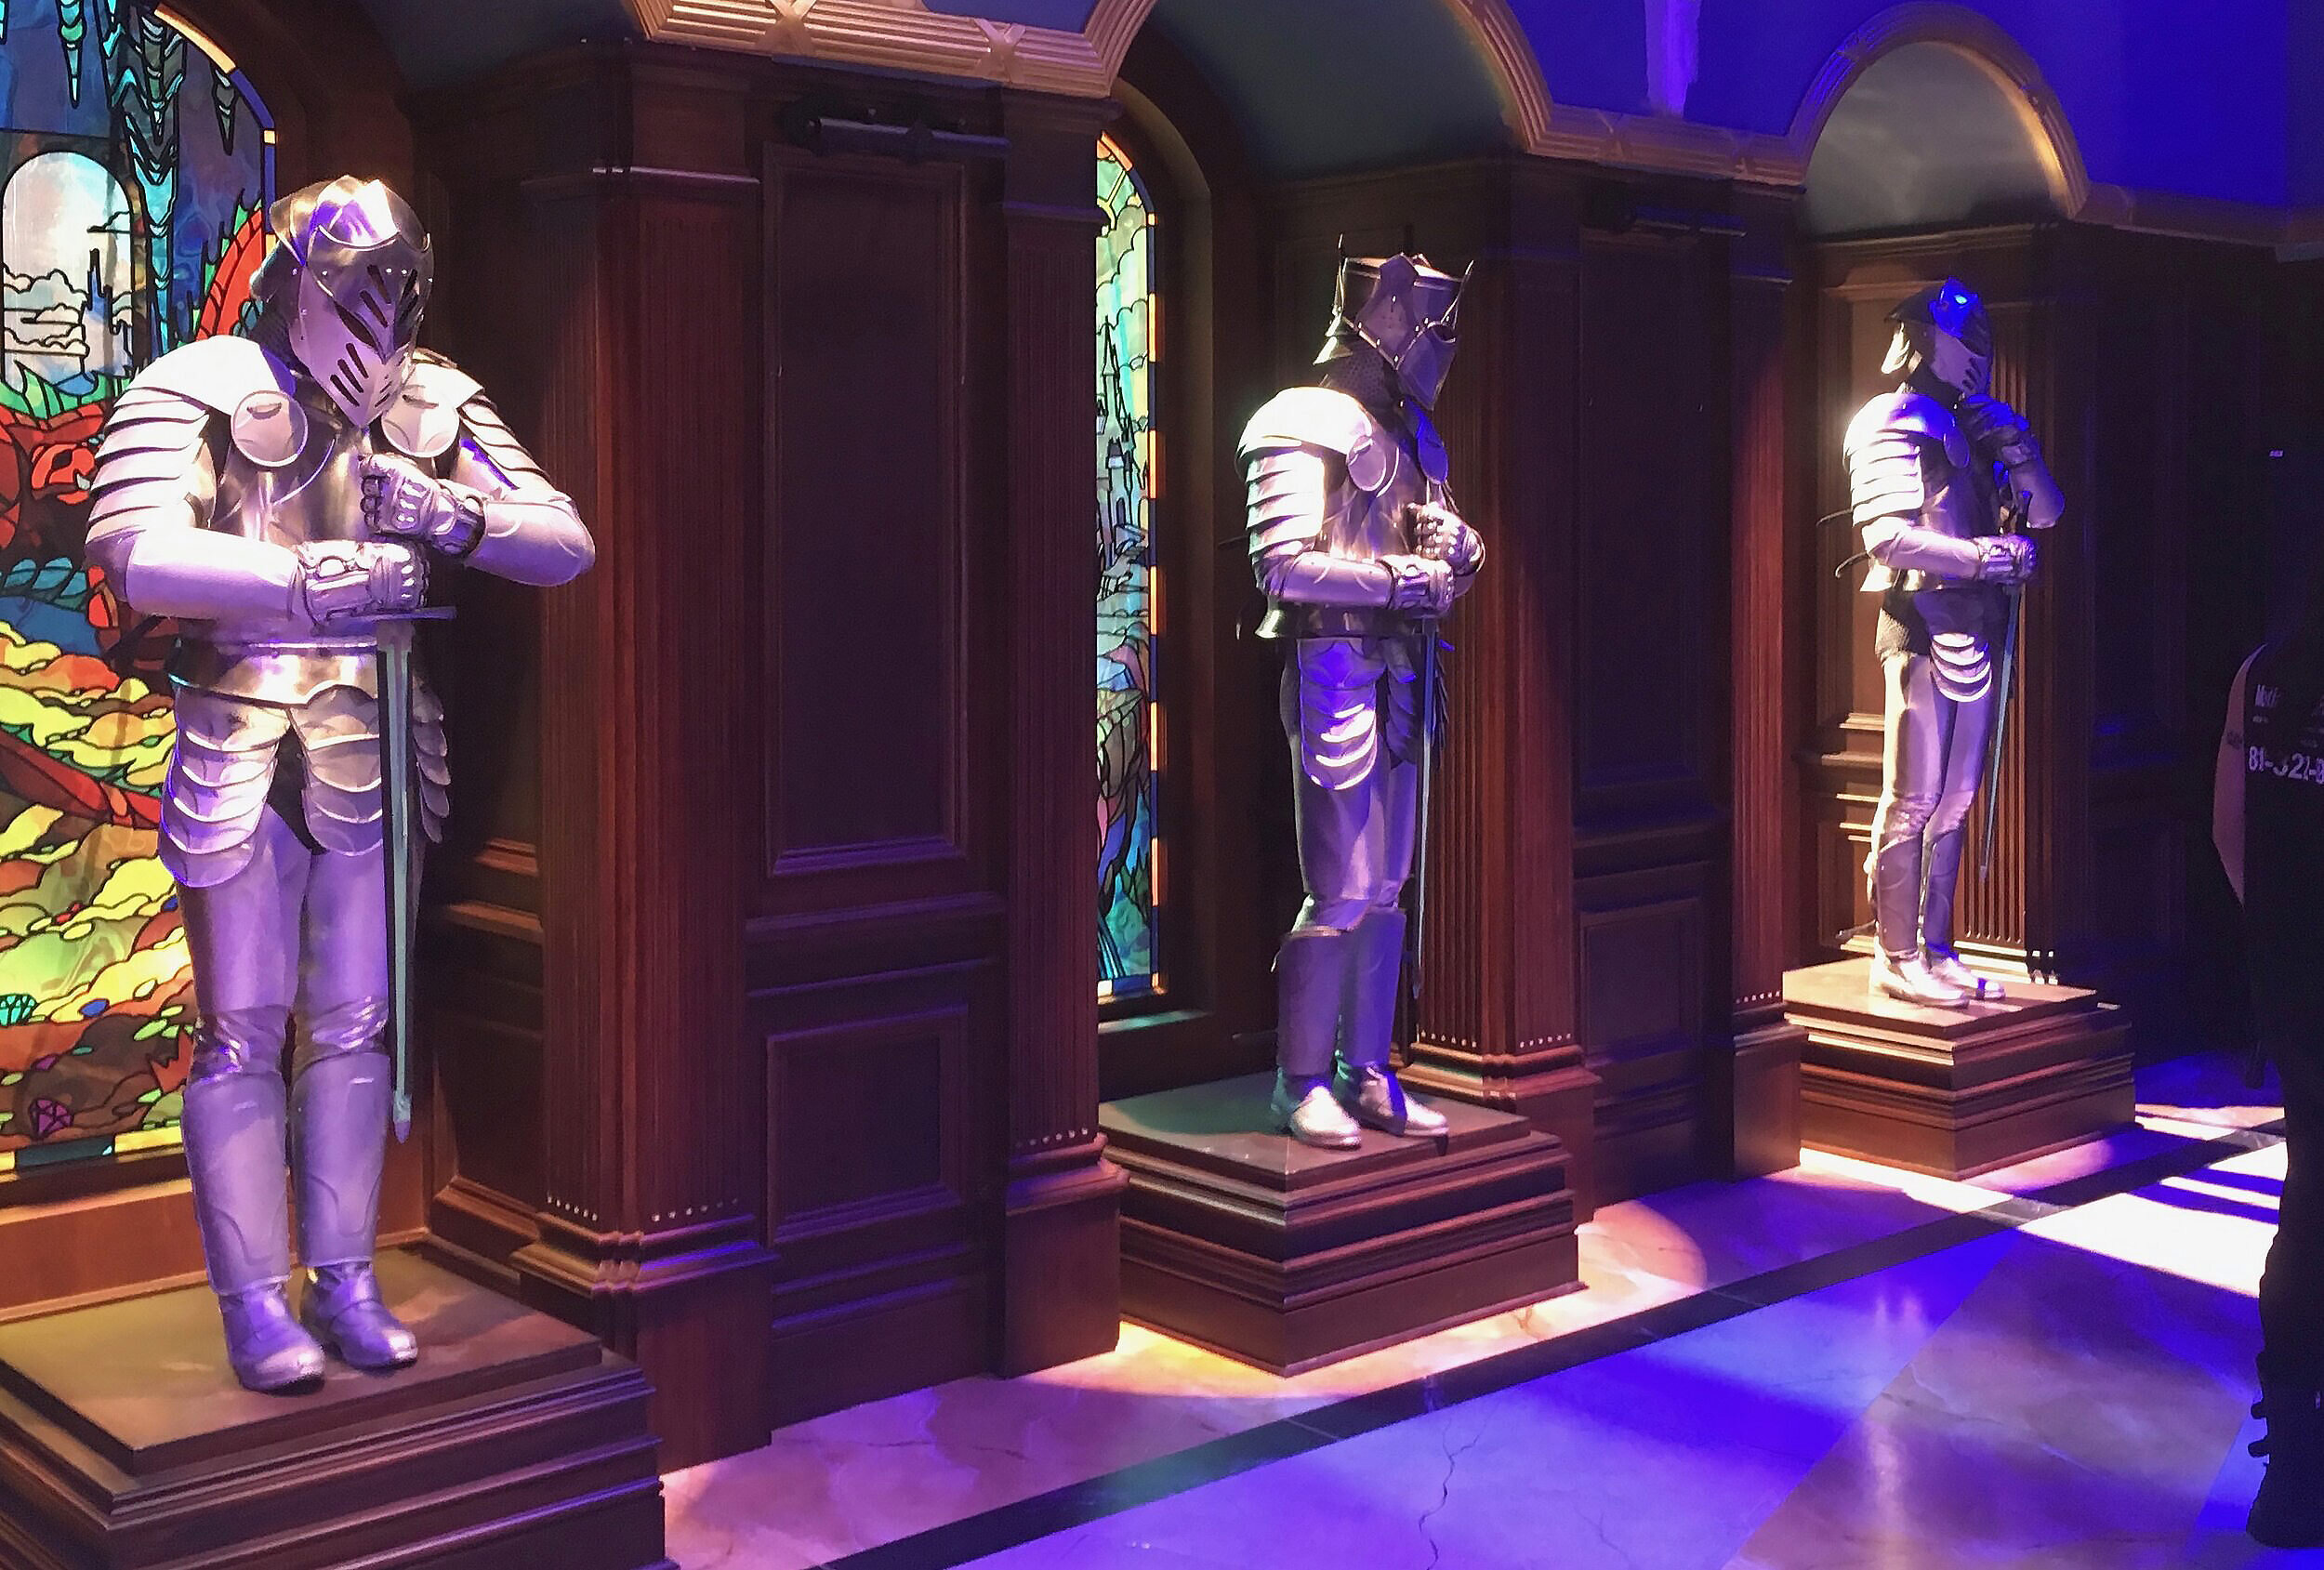 Here three suits of armor/dancers wait to be summoned to life by the newly evil enchantress Audrey (Sarah Jeffrey).